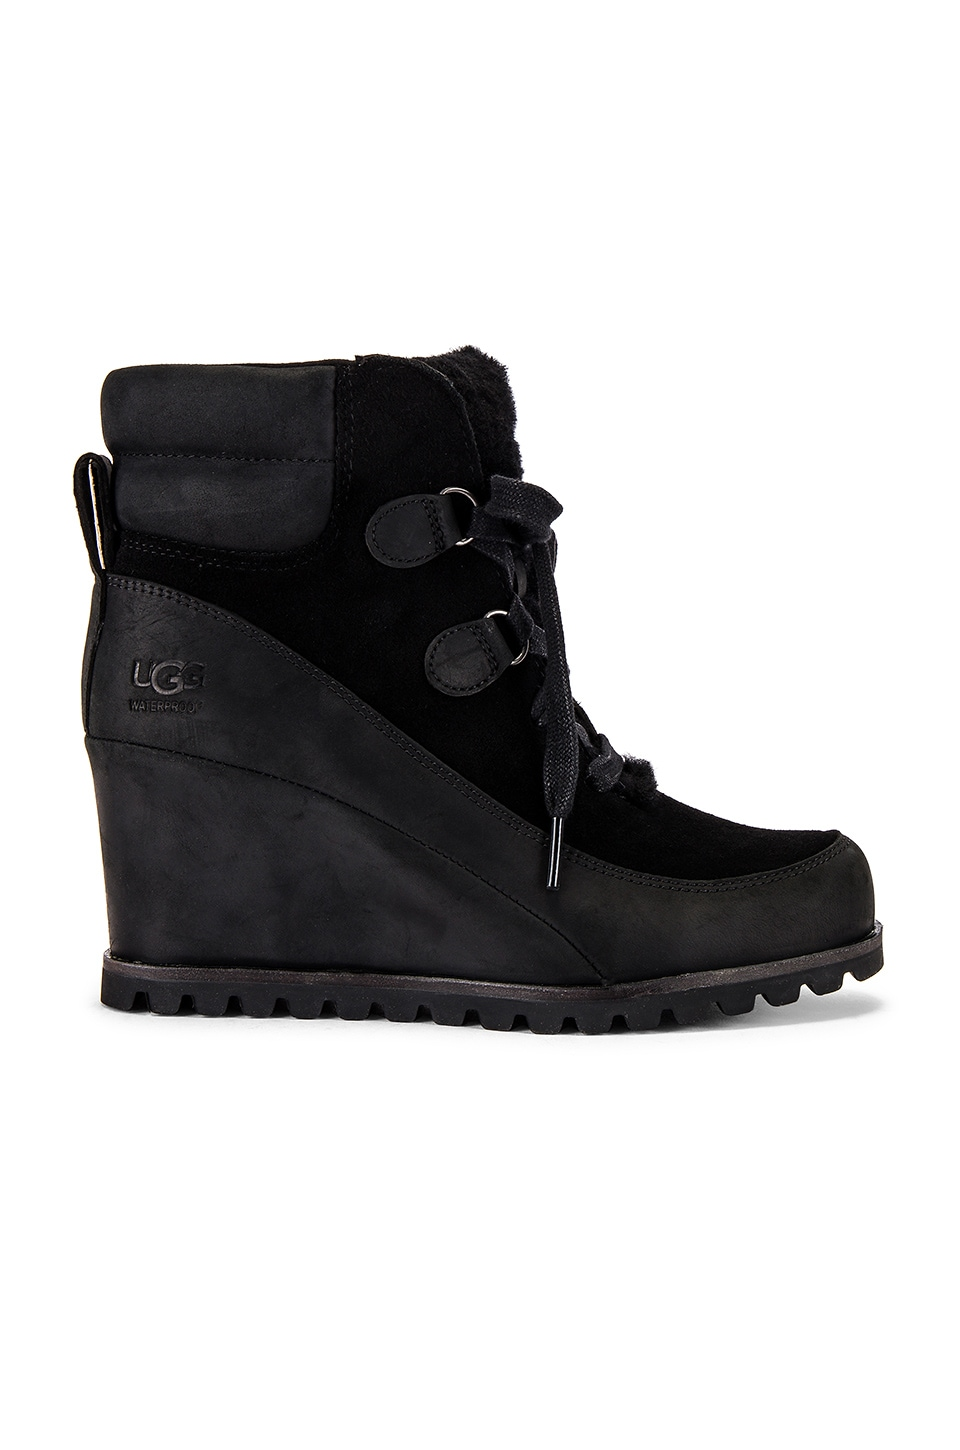 UGG Valory Boot in Black